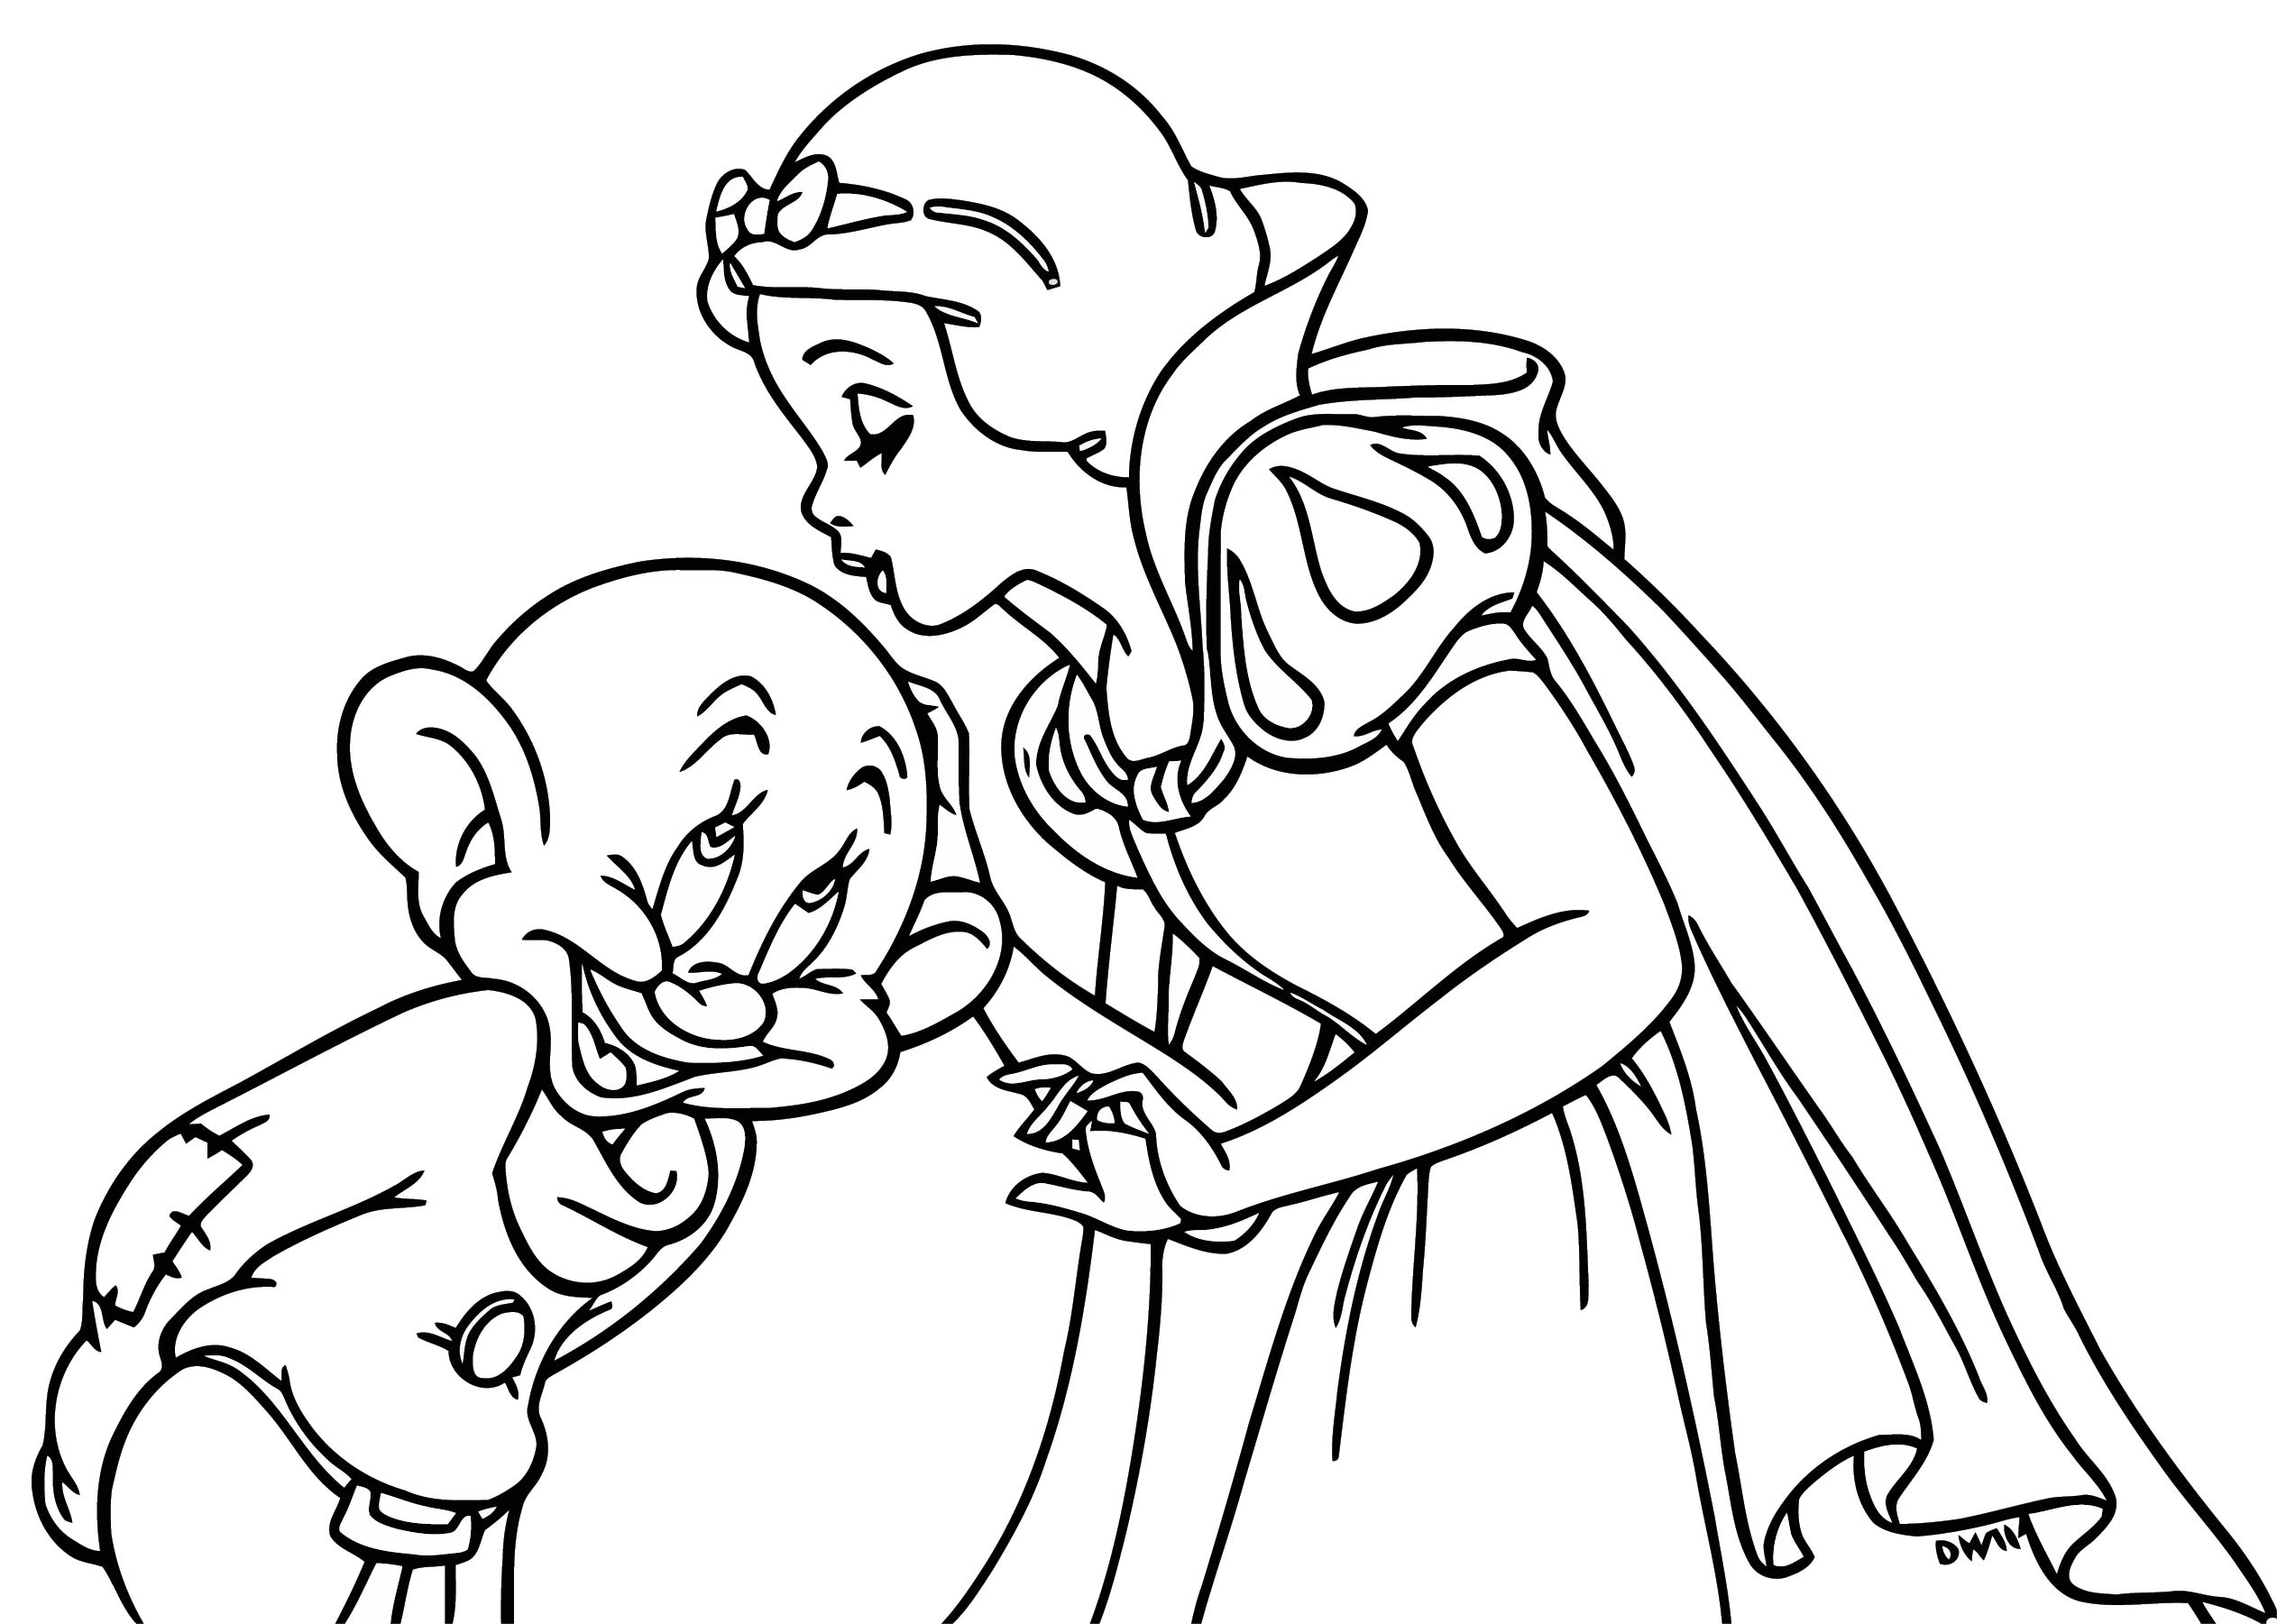 Snow White The Seven Dwarfs Coloring Page 23 | Wecoloringpage.com